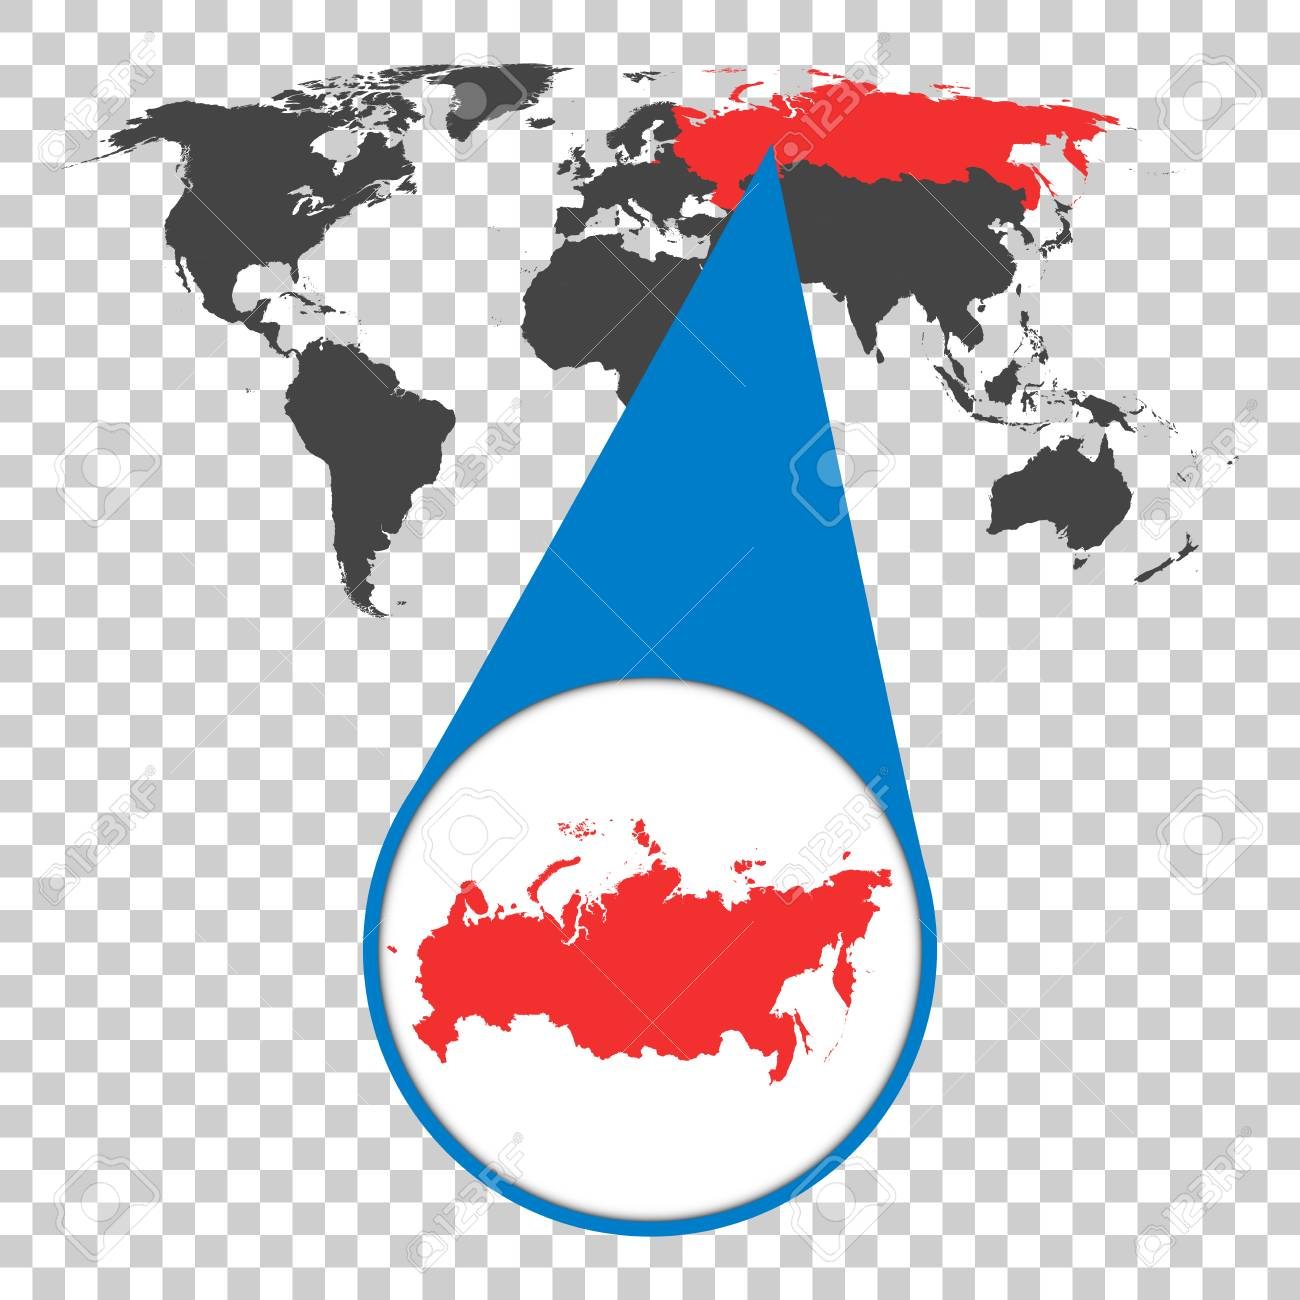 Map Zoom.World Map With Zoom On Russia Russian Federation Map In Loupe